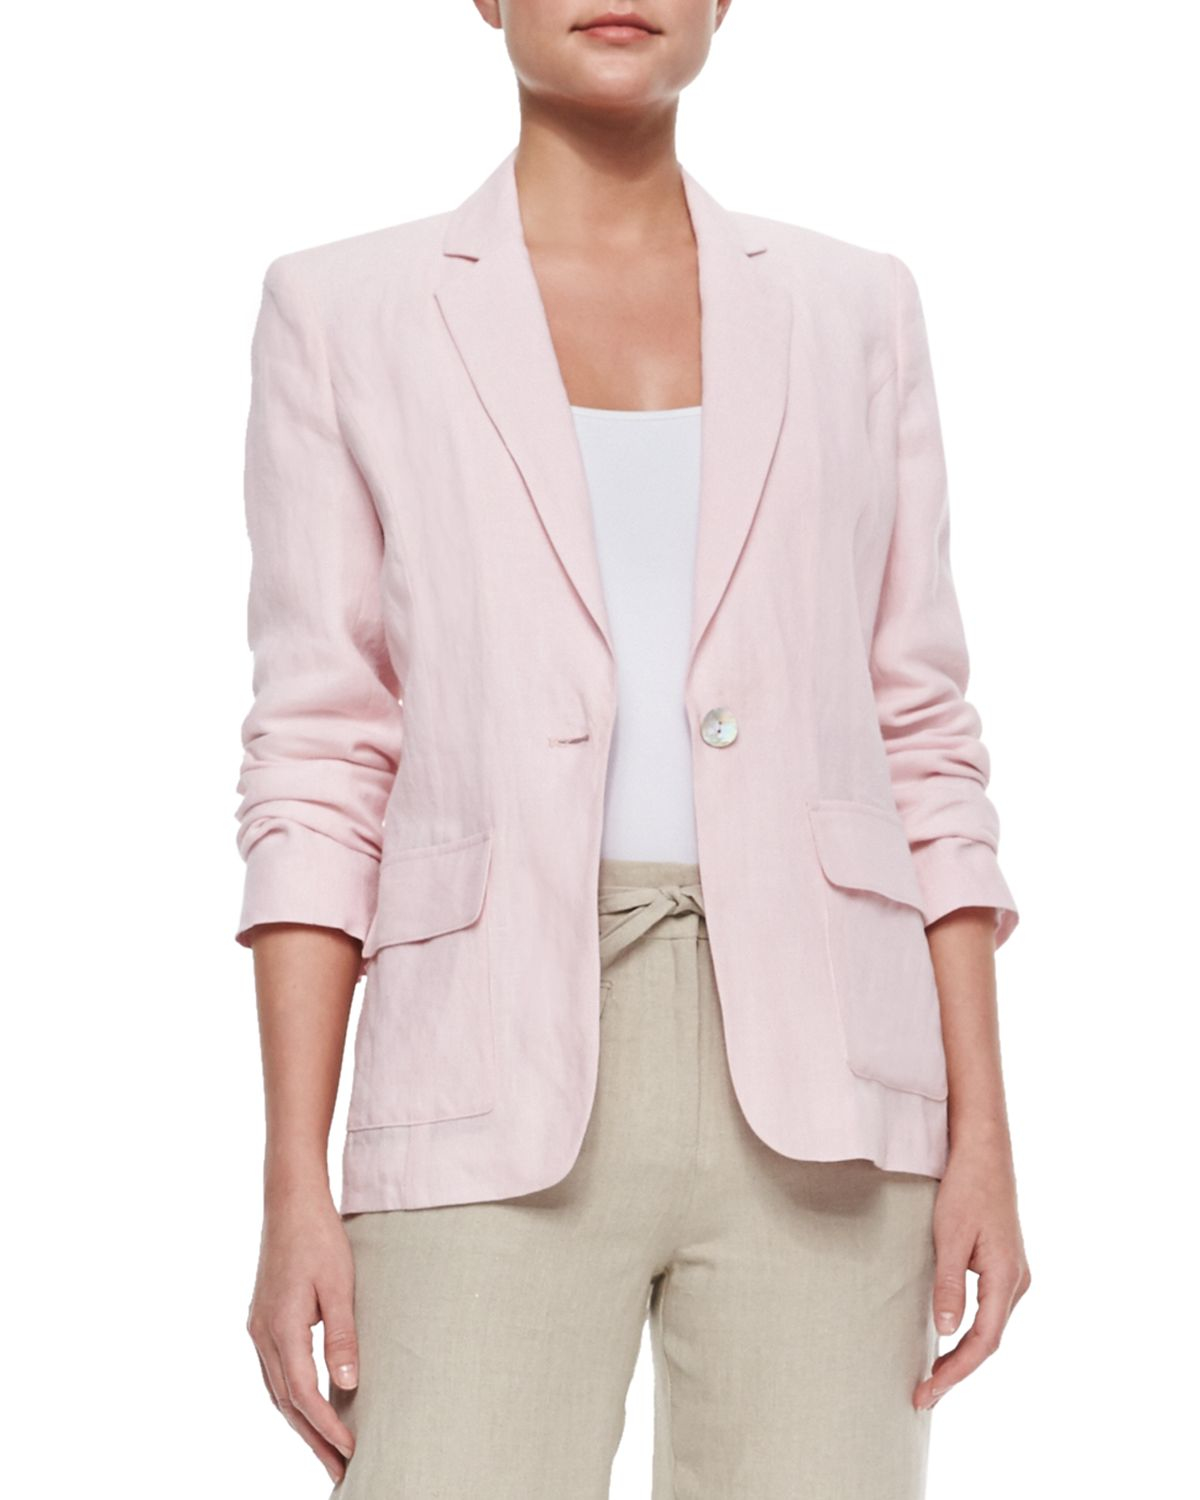 tommy hilfiger womens pale pink with gray accents suit coat size 6 msrp $ nwt.